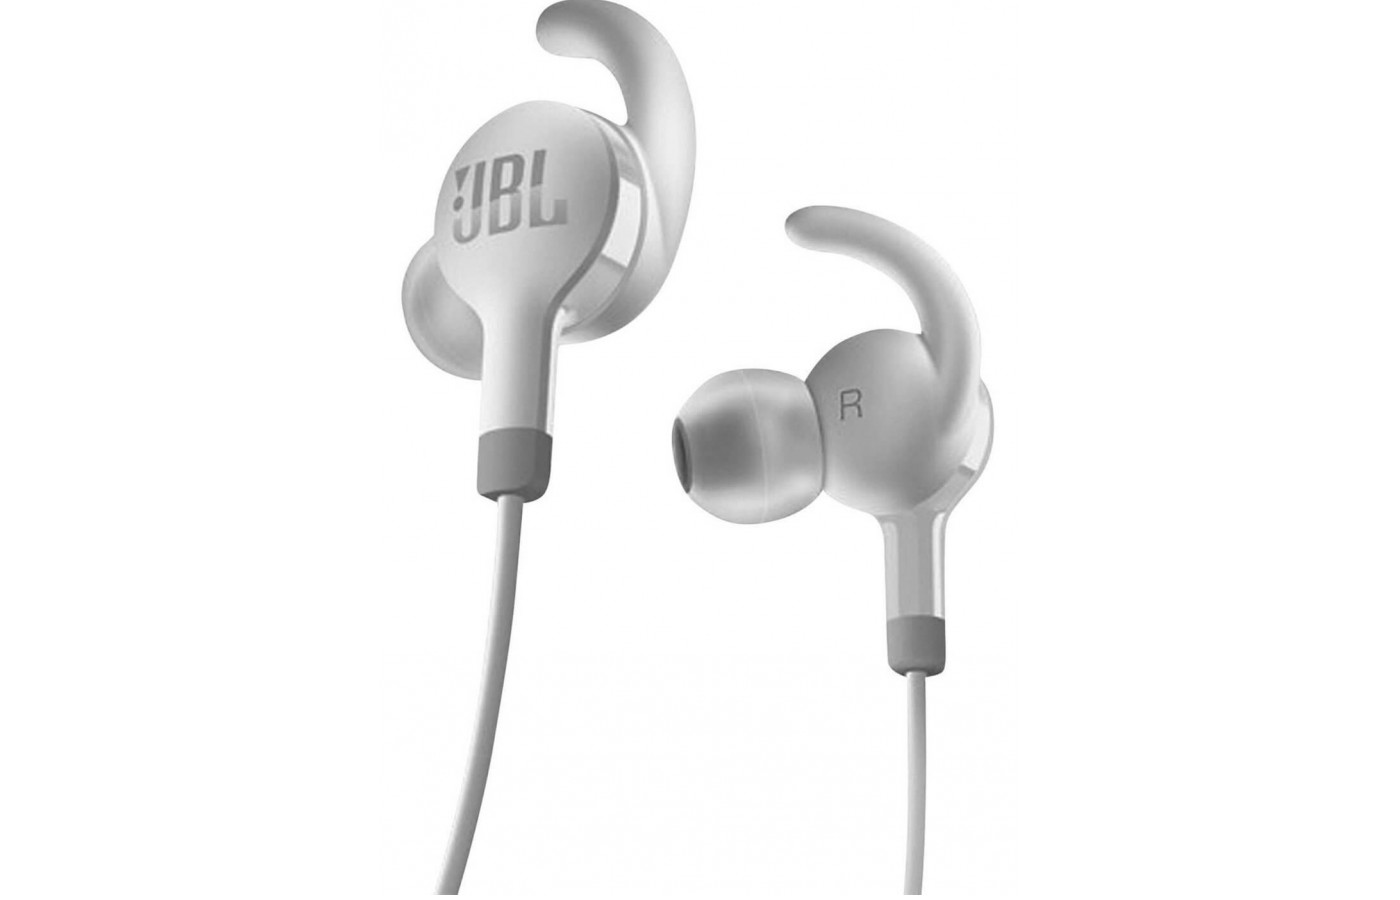 JBL Everest Elite 100 Noise-Cancelling Bluetooth Headphones